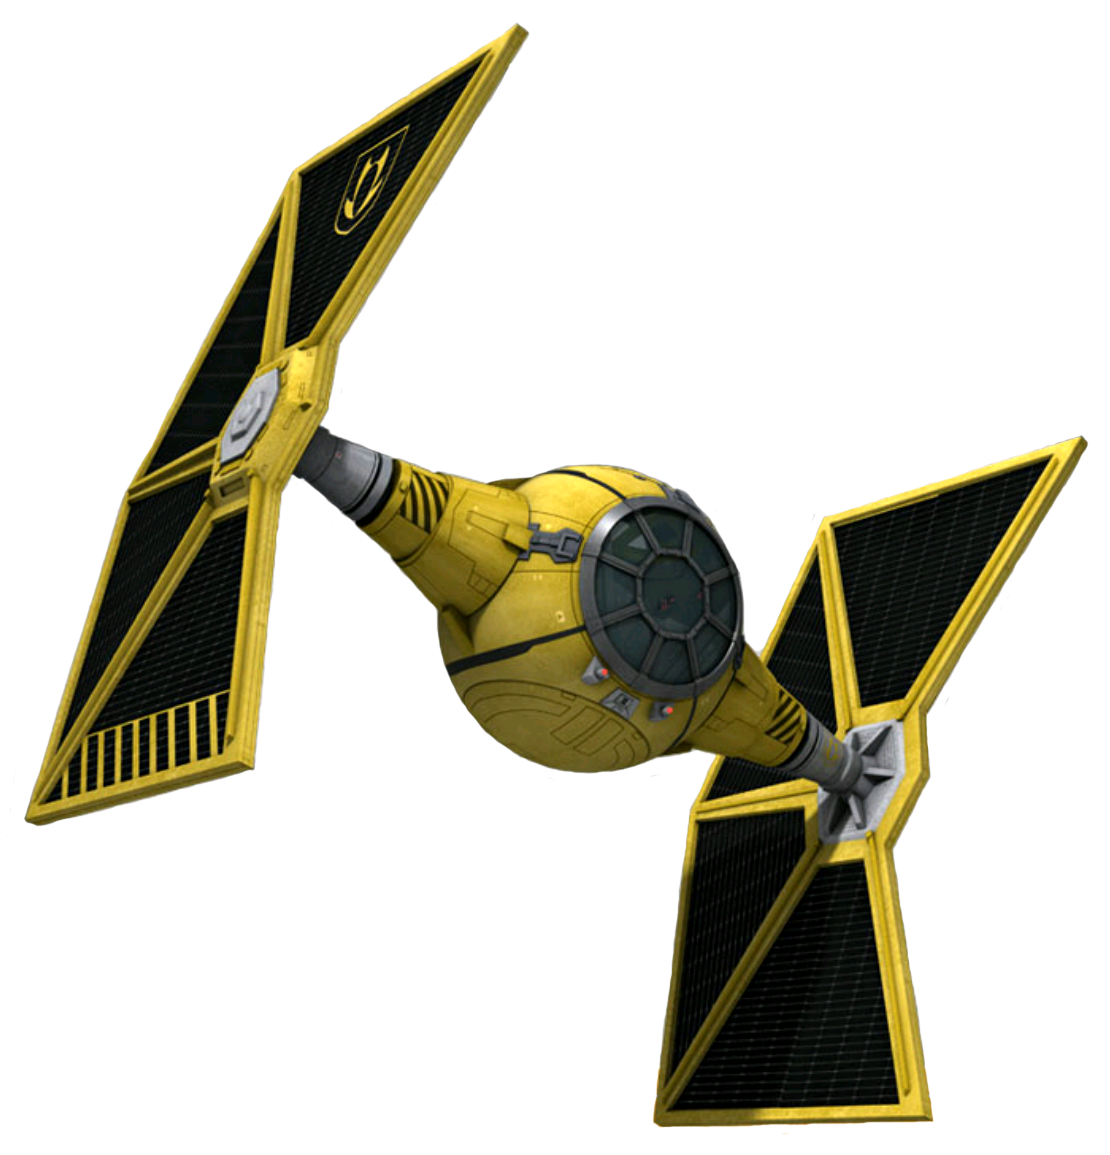 Mining Guild Tie Fighter Swct Png Star Wars Galaxies Star Wars Vehicles Star Wars Pictures